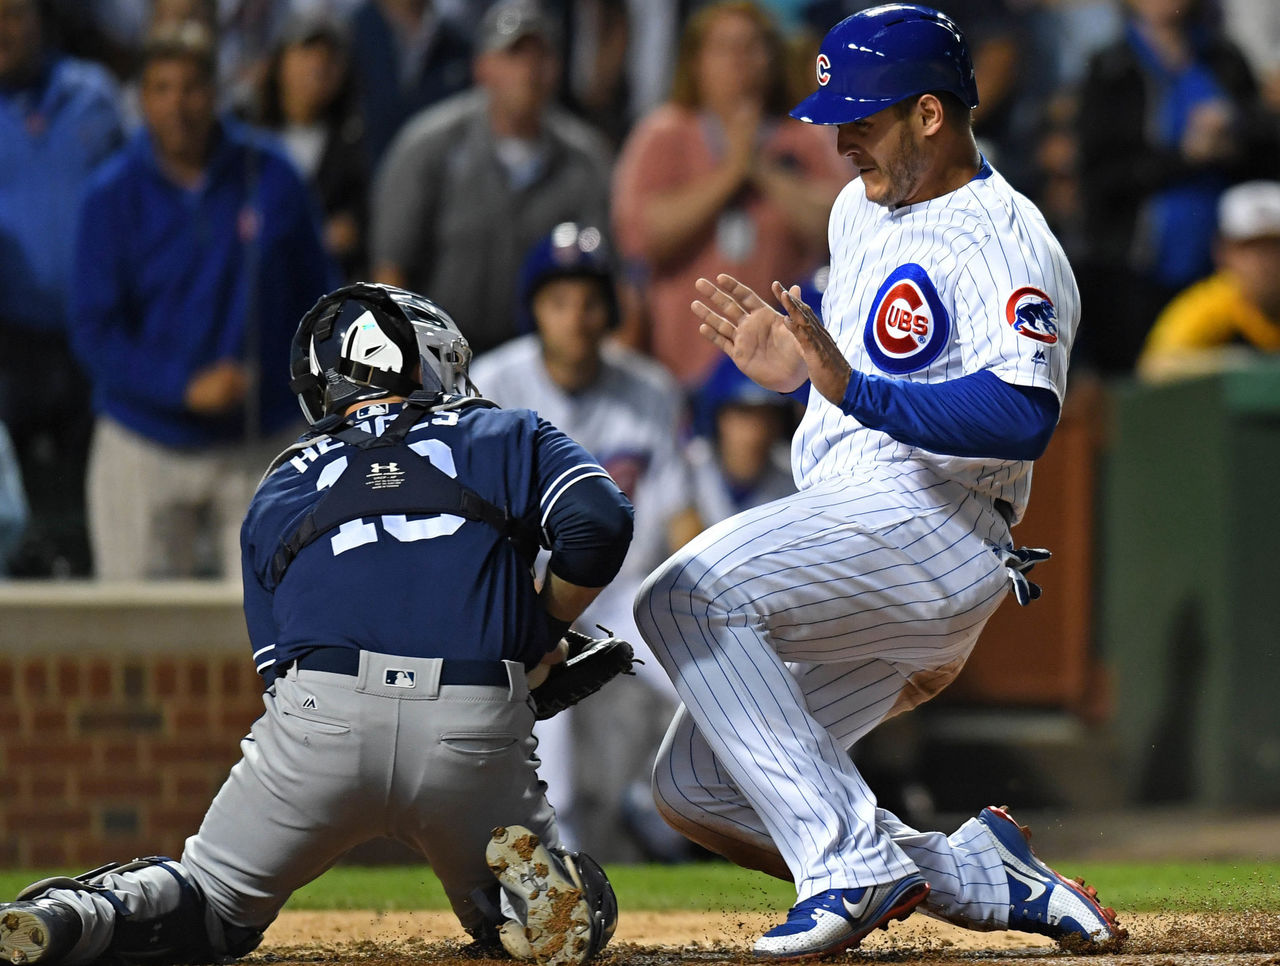 Cropped_2017-06-20t022020z_1607854196_nocid_rtrmadp_3_mlb-san-diego-padres-at-chicago-cubs